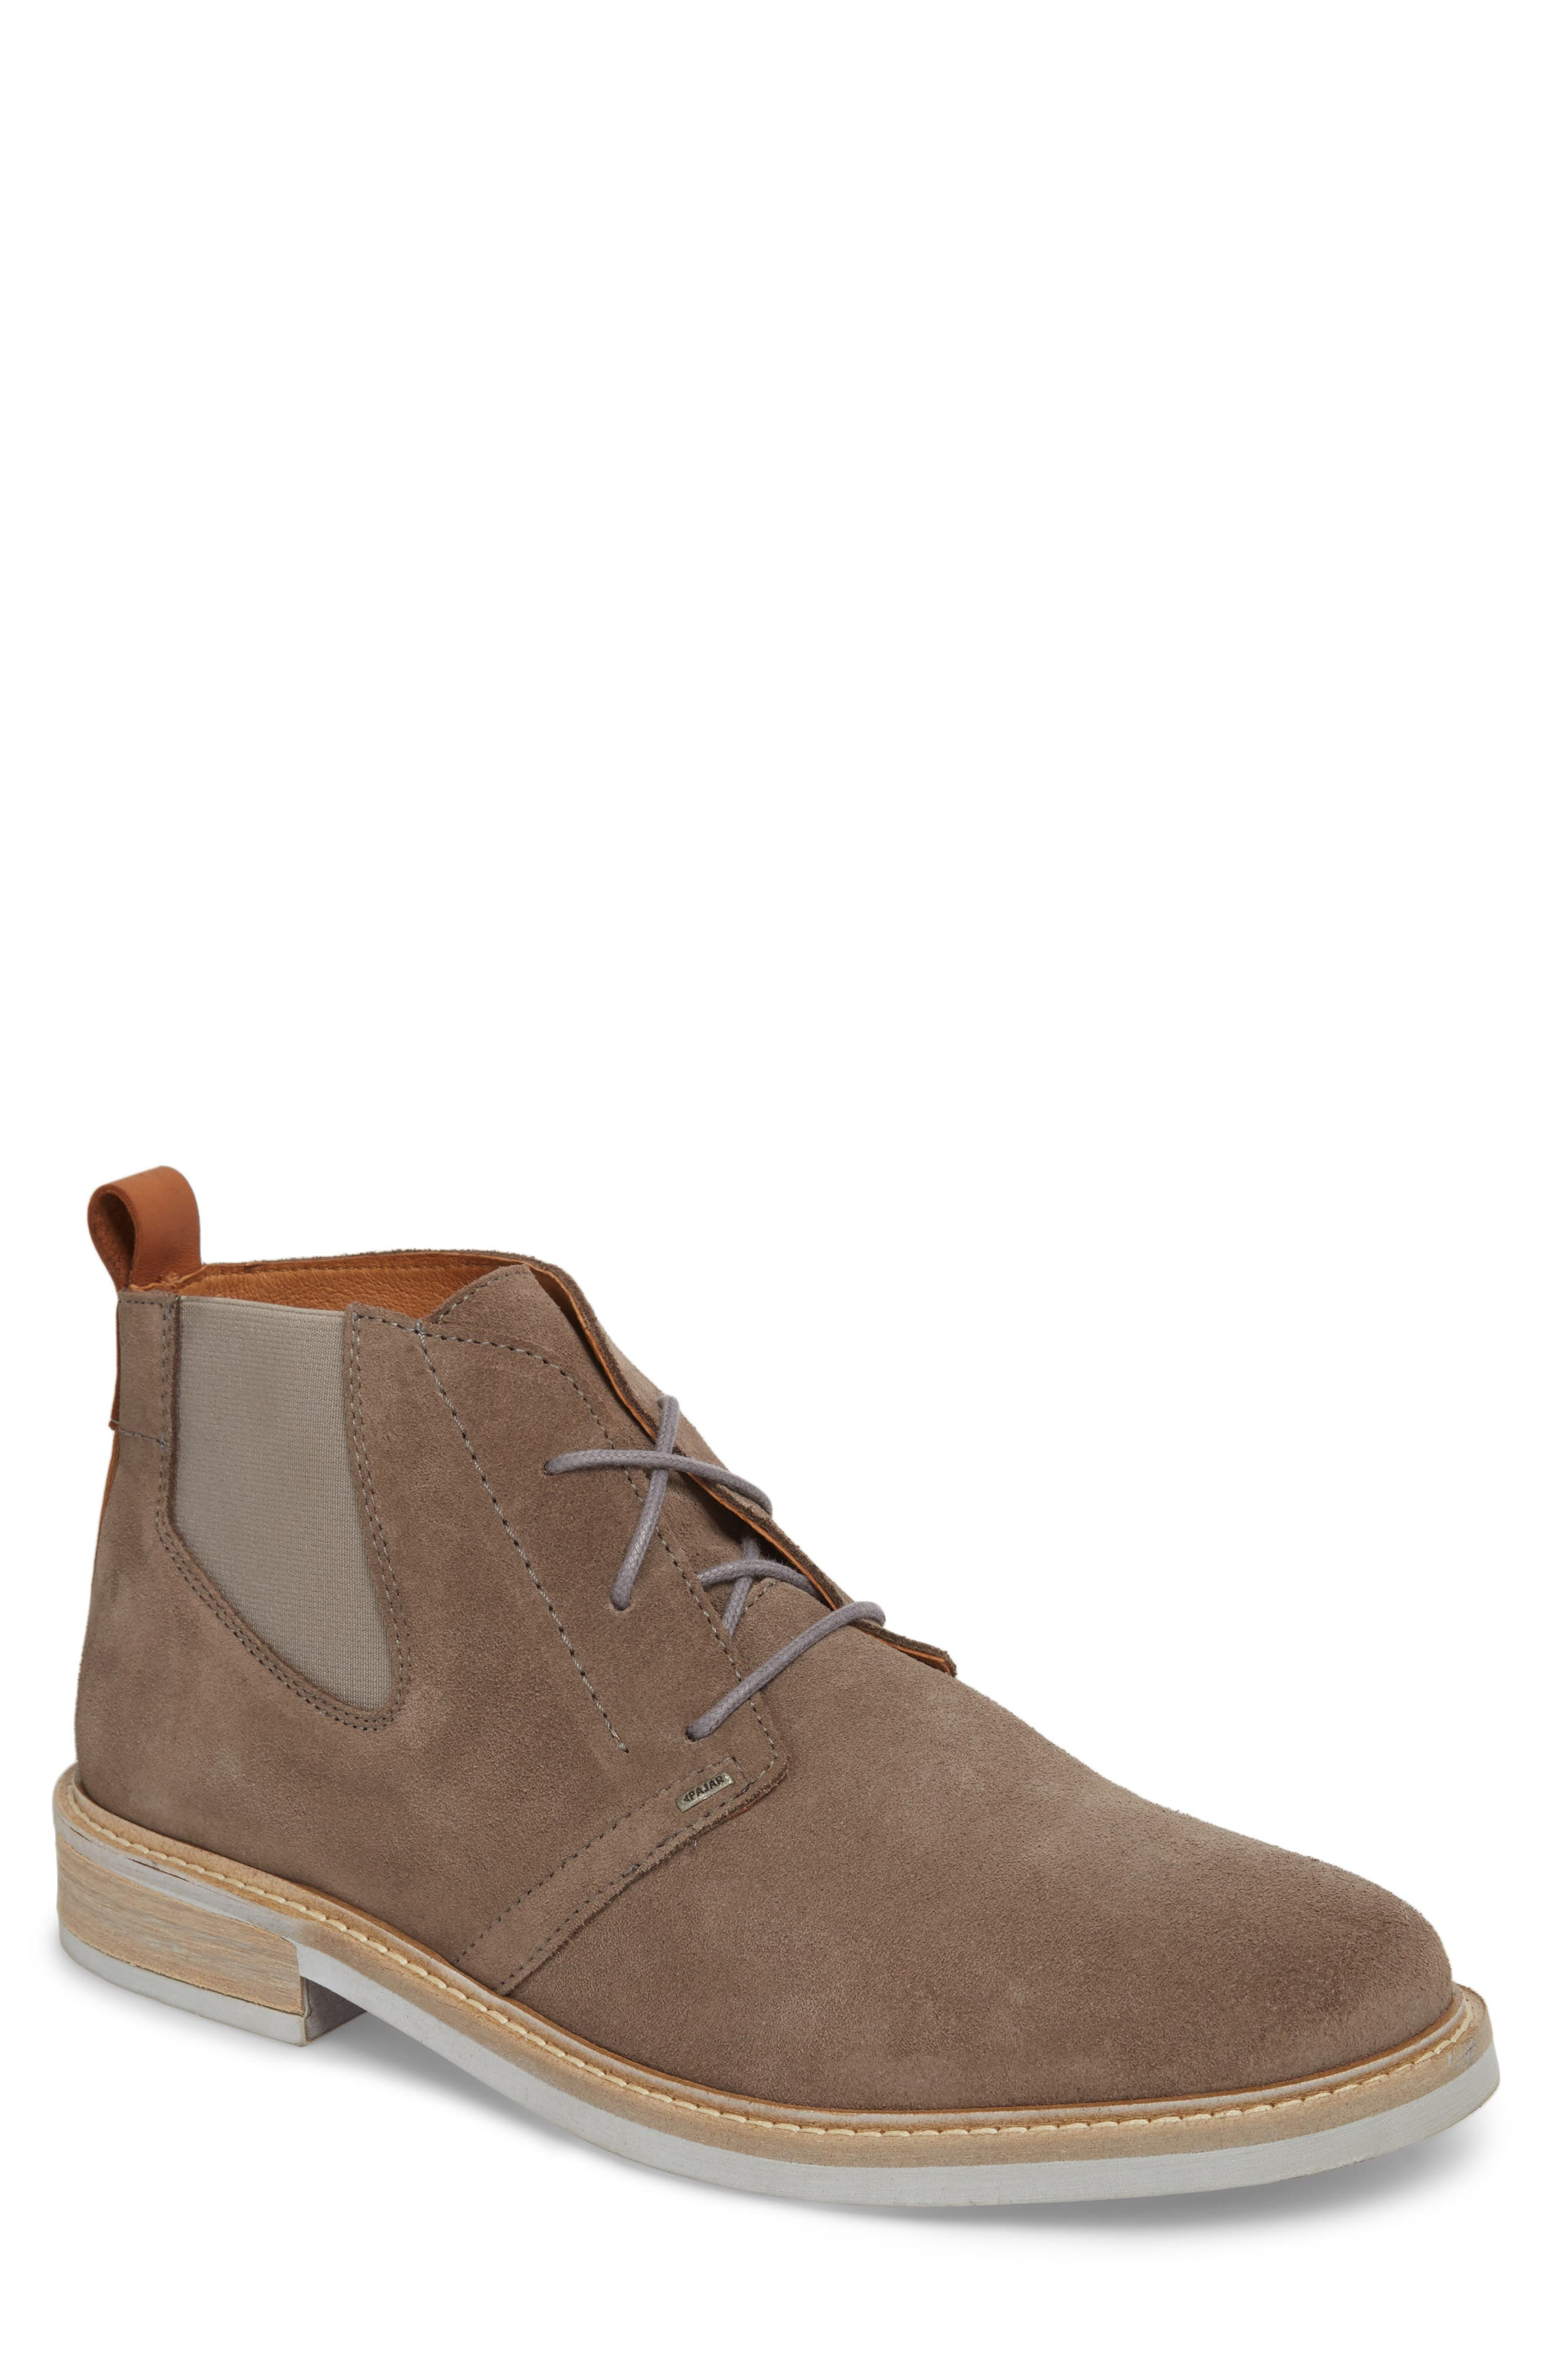 Jameson Water Resistant Chukka Boot,                             Main thumbnail 1, color,                             ANTHRACITE